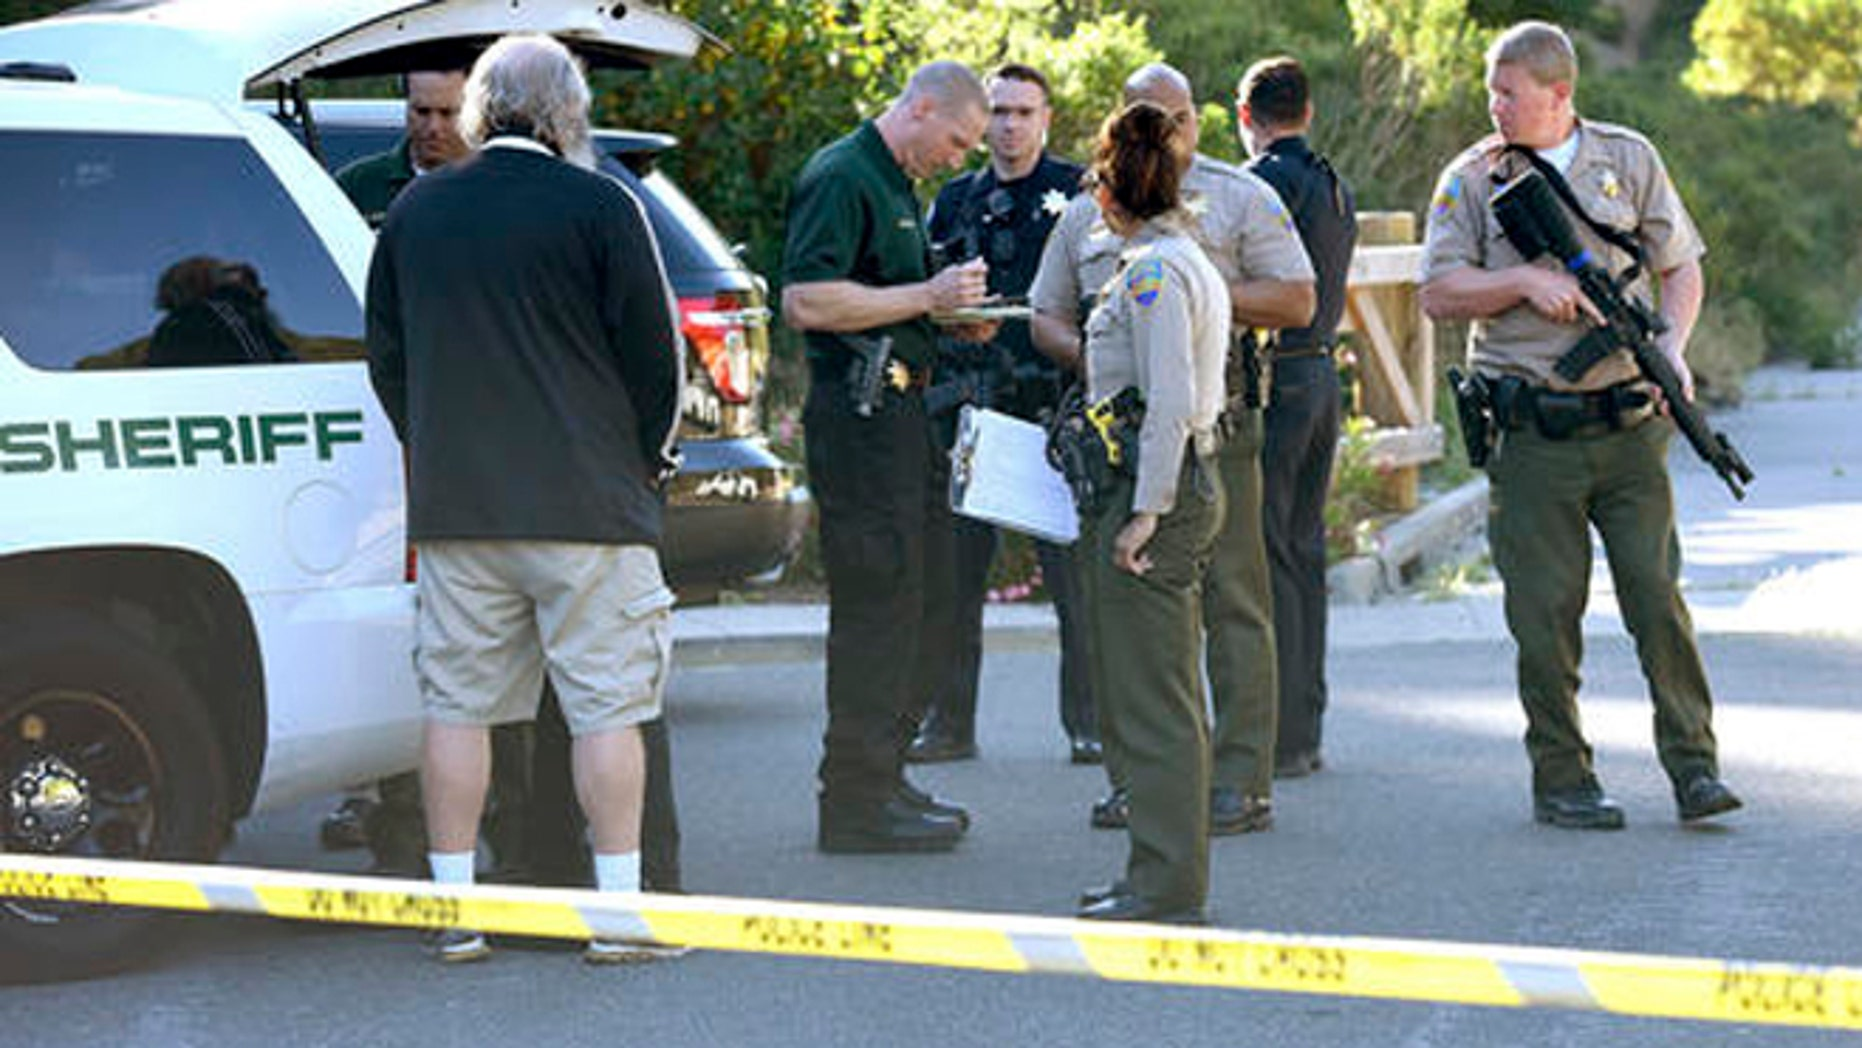 In this photo taken Wednesday, May 25, 2016, Marin County Sheriff and Novato police members gather at a command post to form a massive manhunt following at attack on two students in Novato, Calif. Attackers shot two students near a San Francisco Bay Area high school, killing one and sending another to a hospital in an incident that prompted the closing of the campus, authorities said Thursday. Both victims were students at Novato High School. (Robert Tong/Marin Independent Journal via AP)